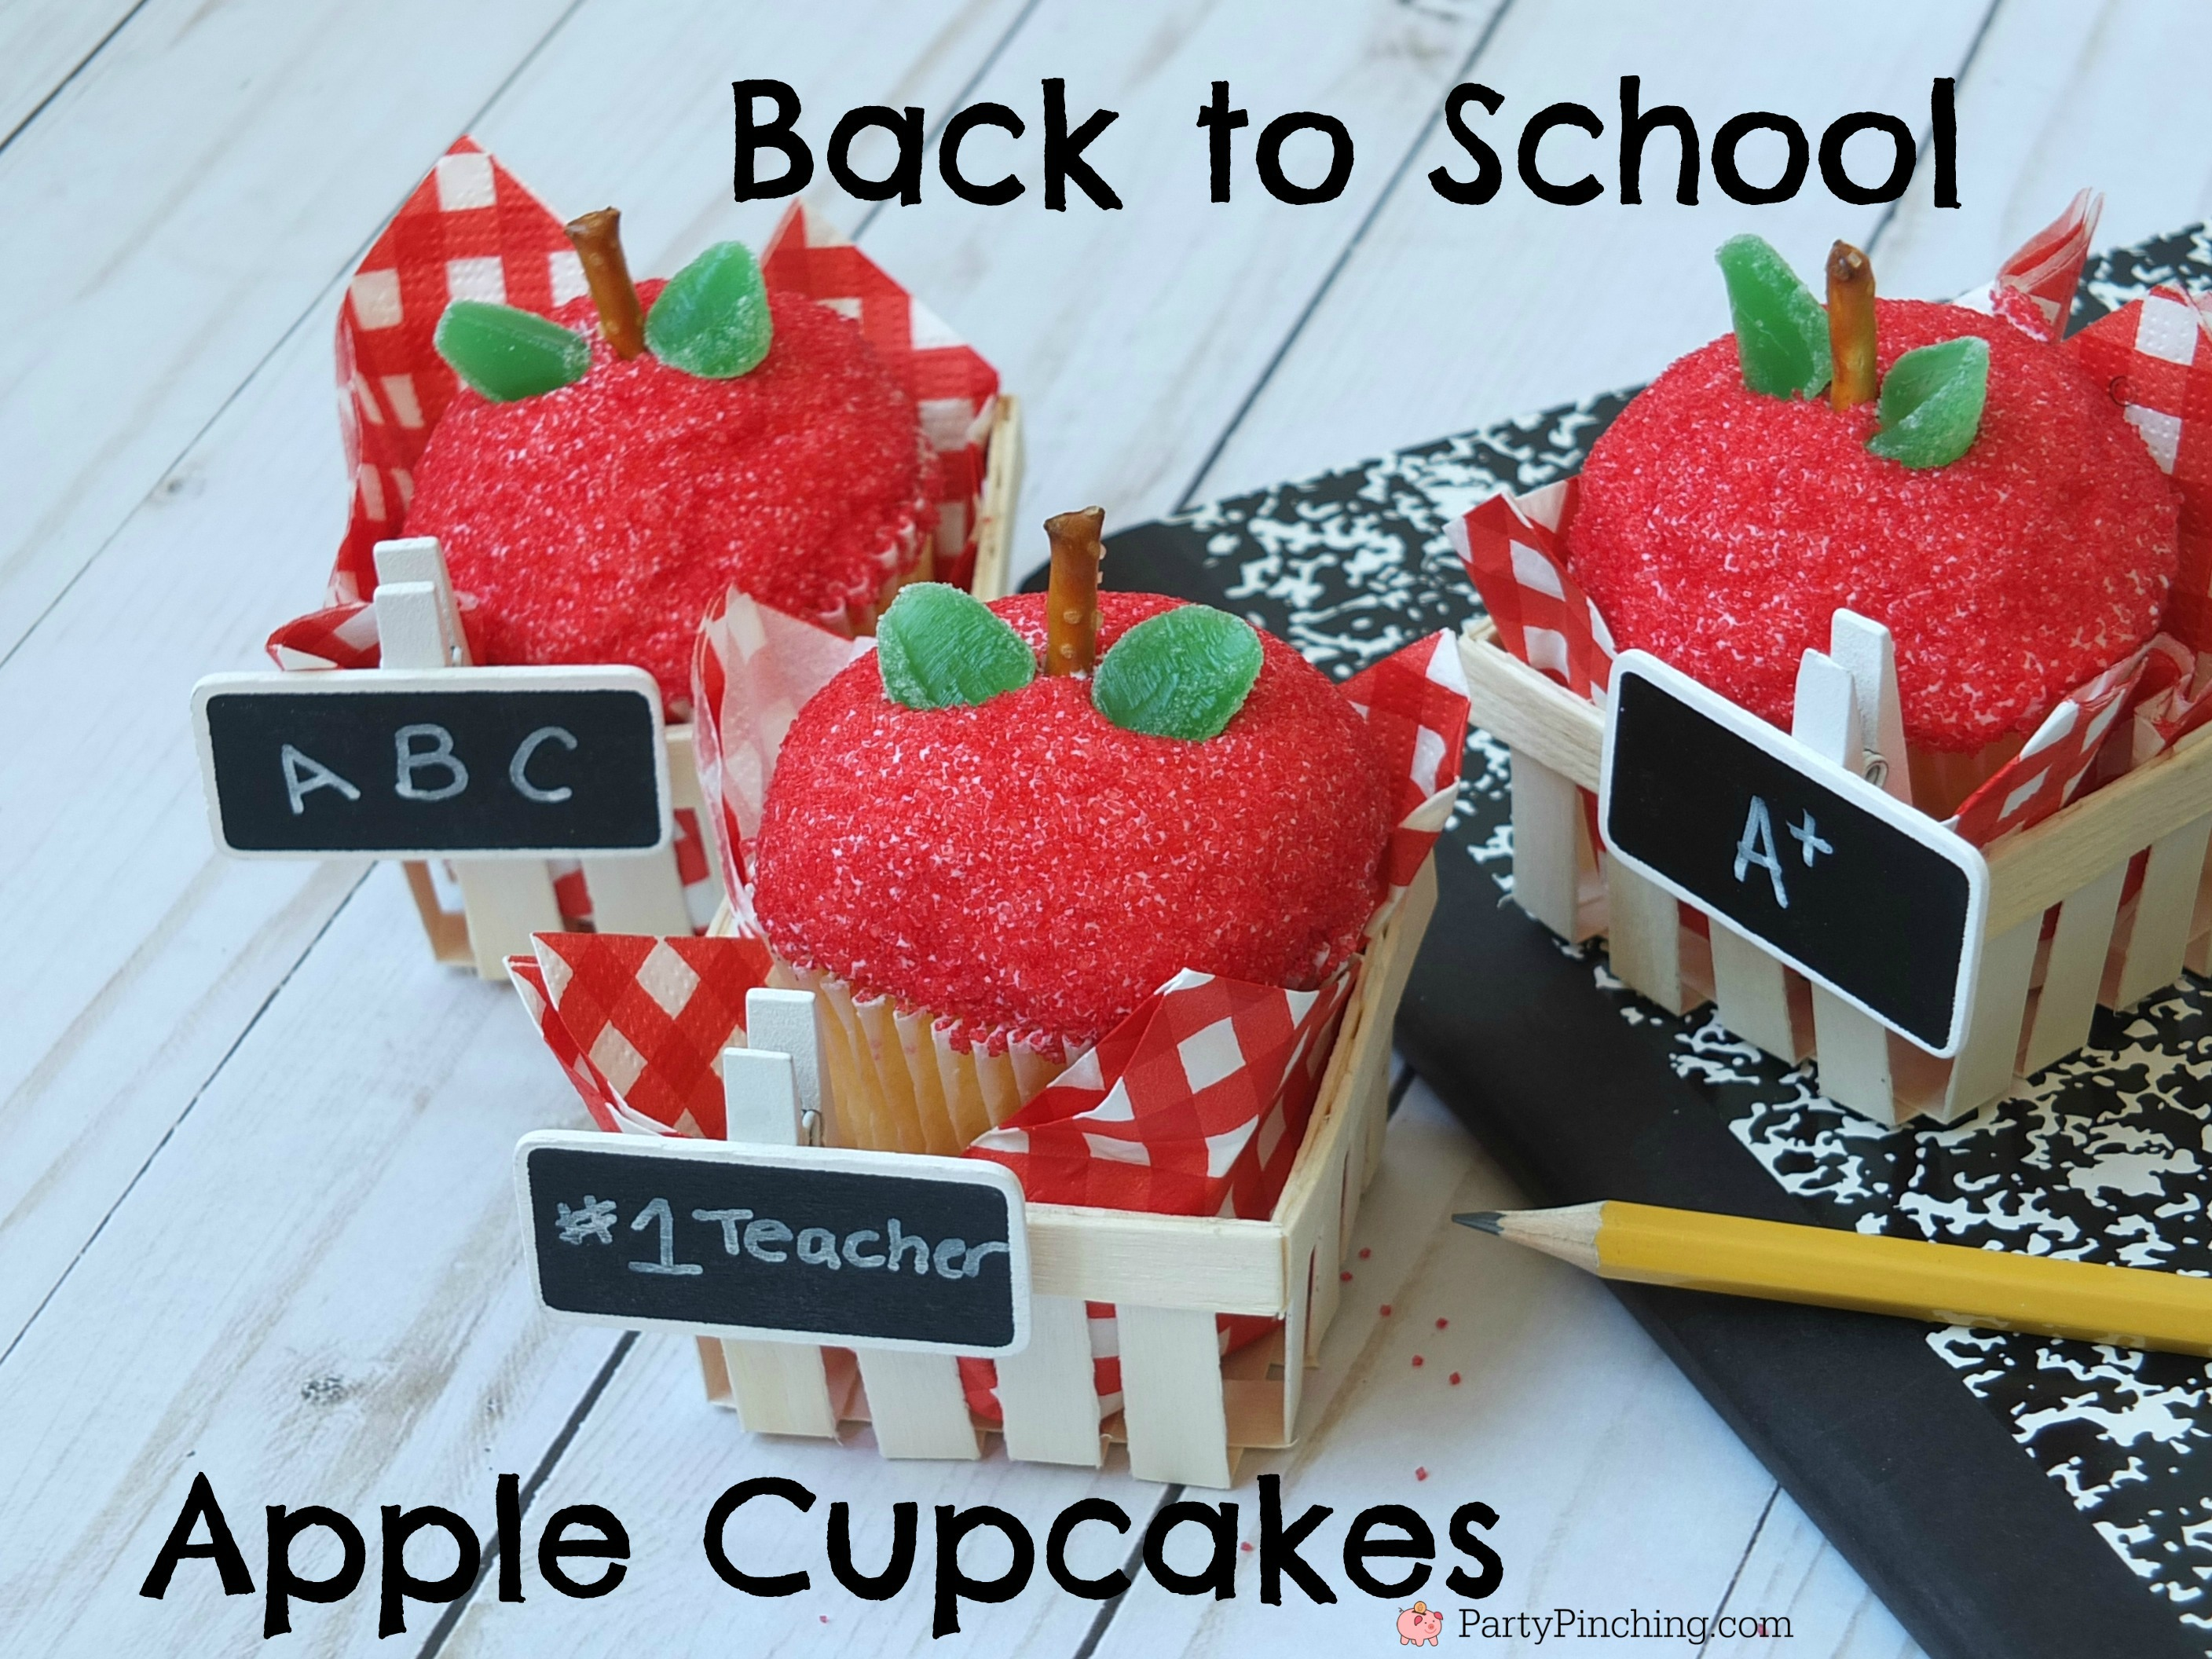 Back to school apple cupcakes, teacher gift treat ideas, fun and easy cupcakes, apple decorated cupcakes, store bought cupcakes, fun food for kids, sweet treats, after school snack, school party classroom ideas